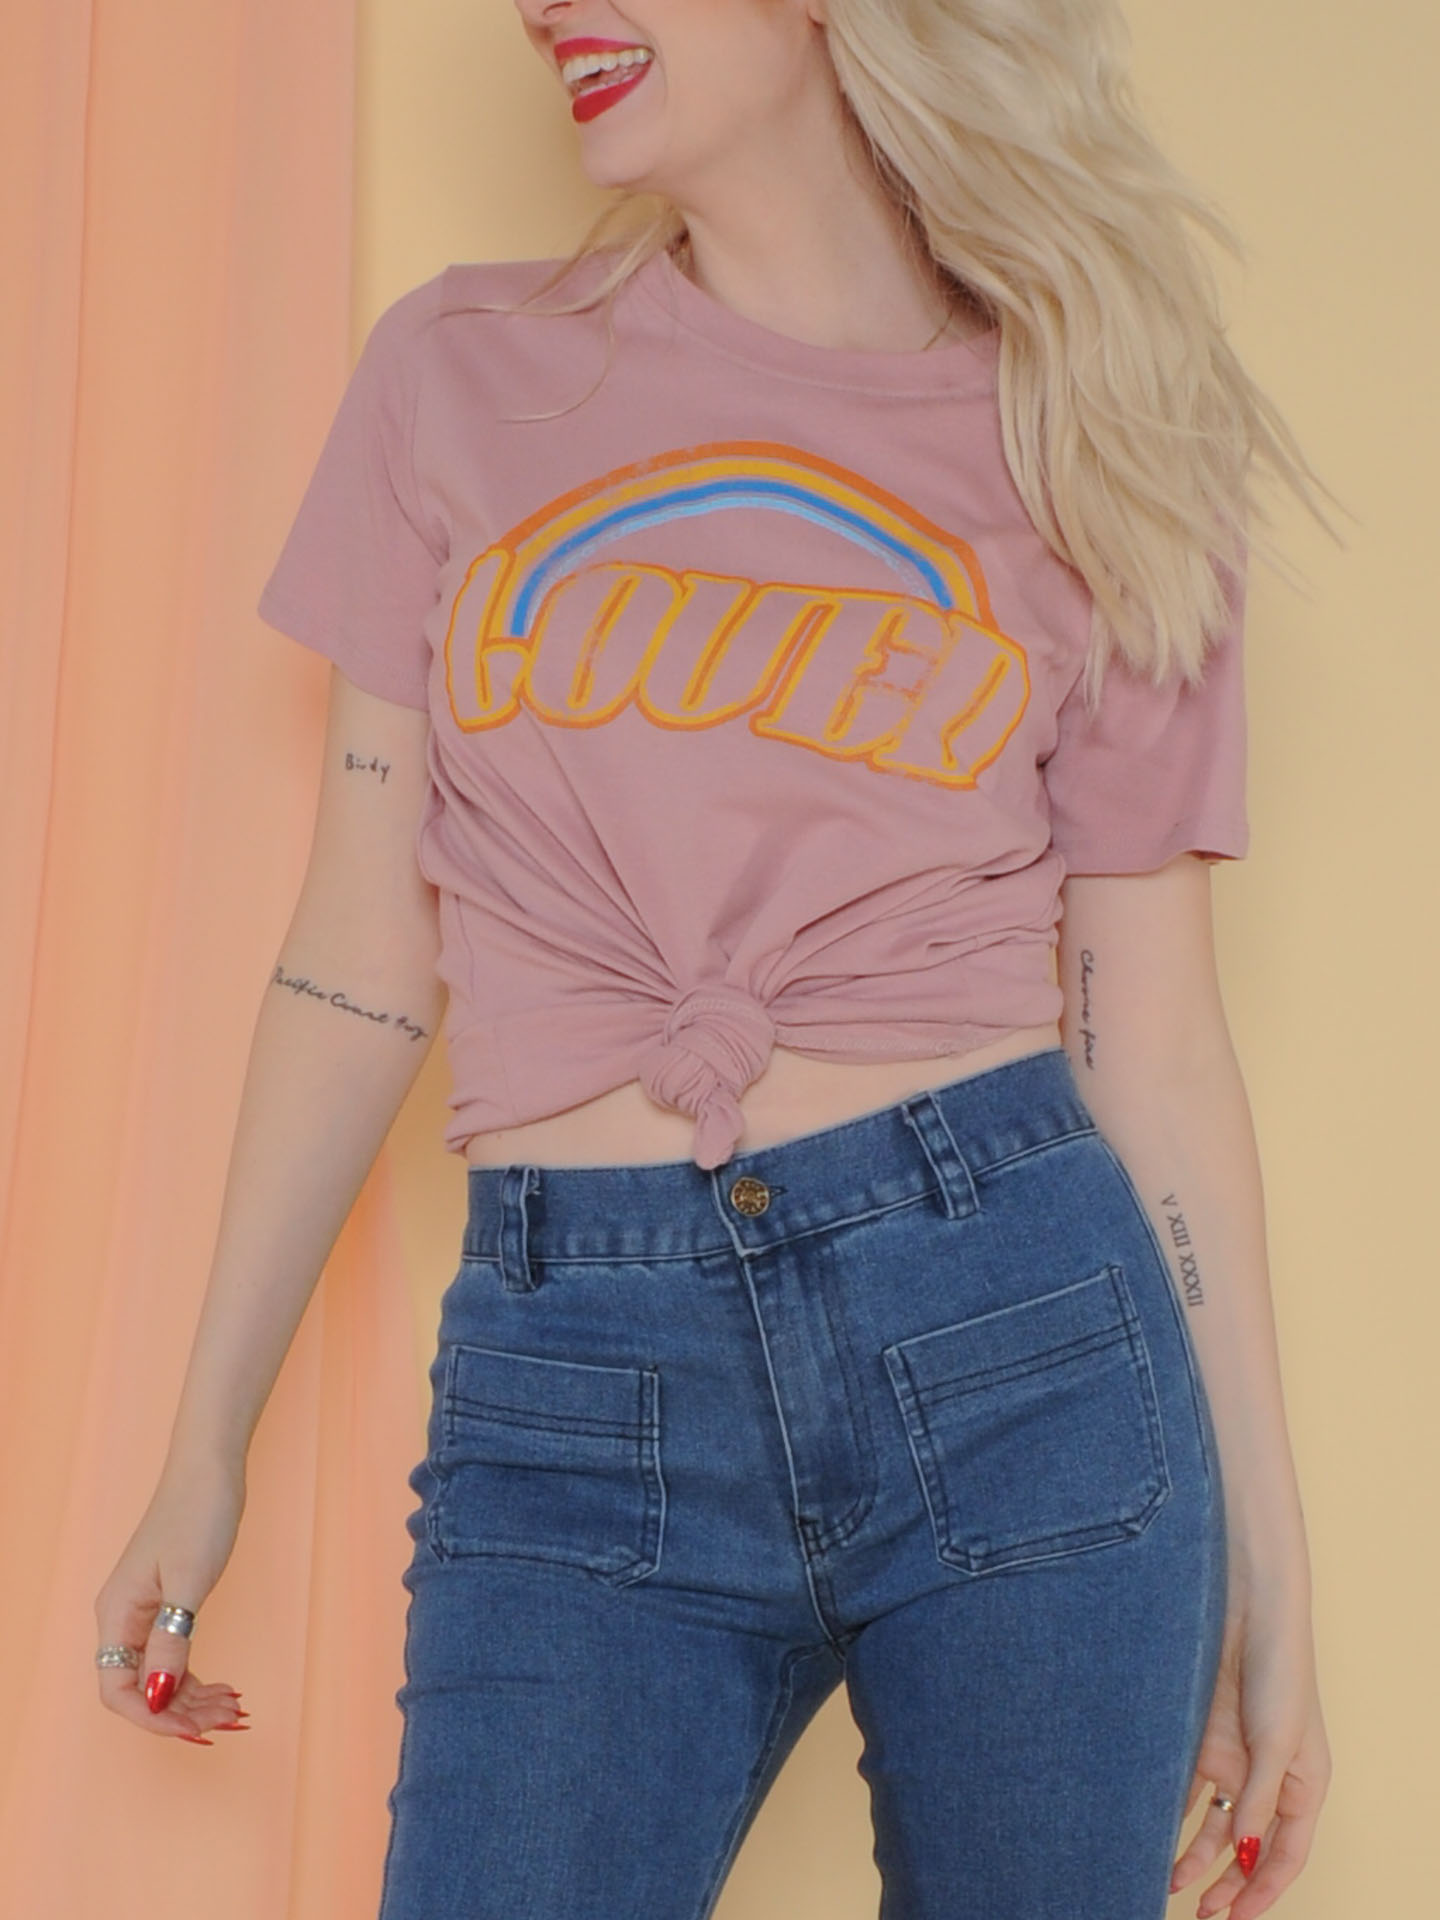 Loved Tee Pink Rainbow Graphic tee